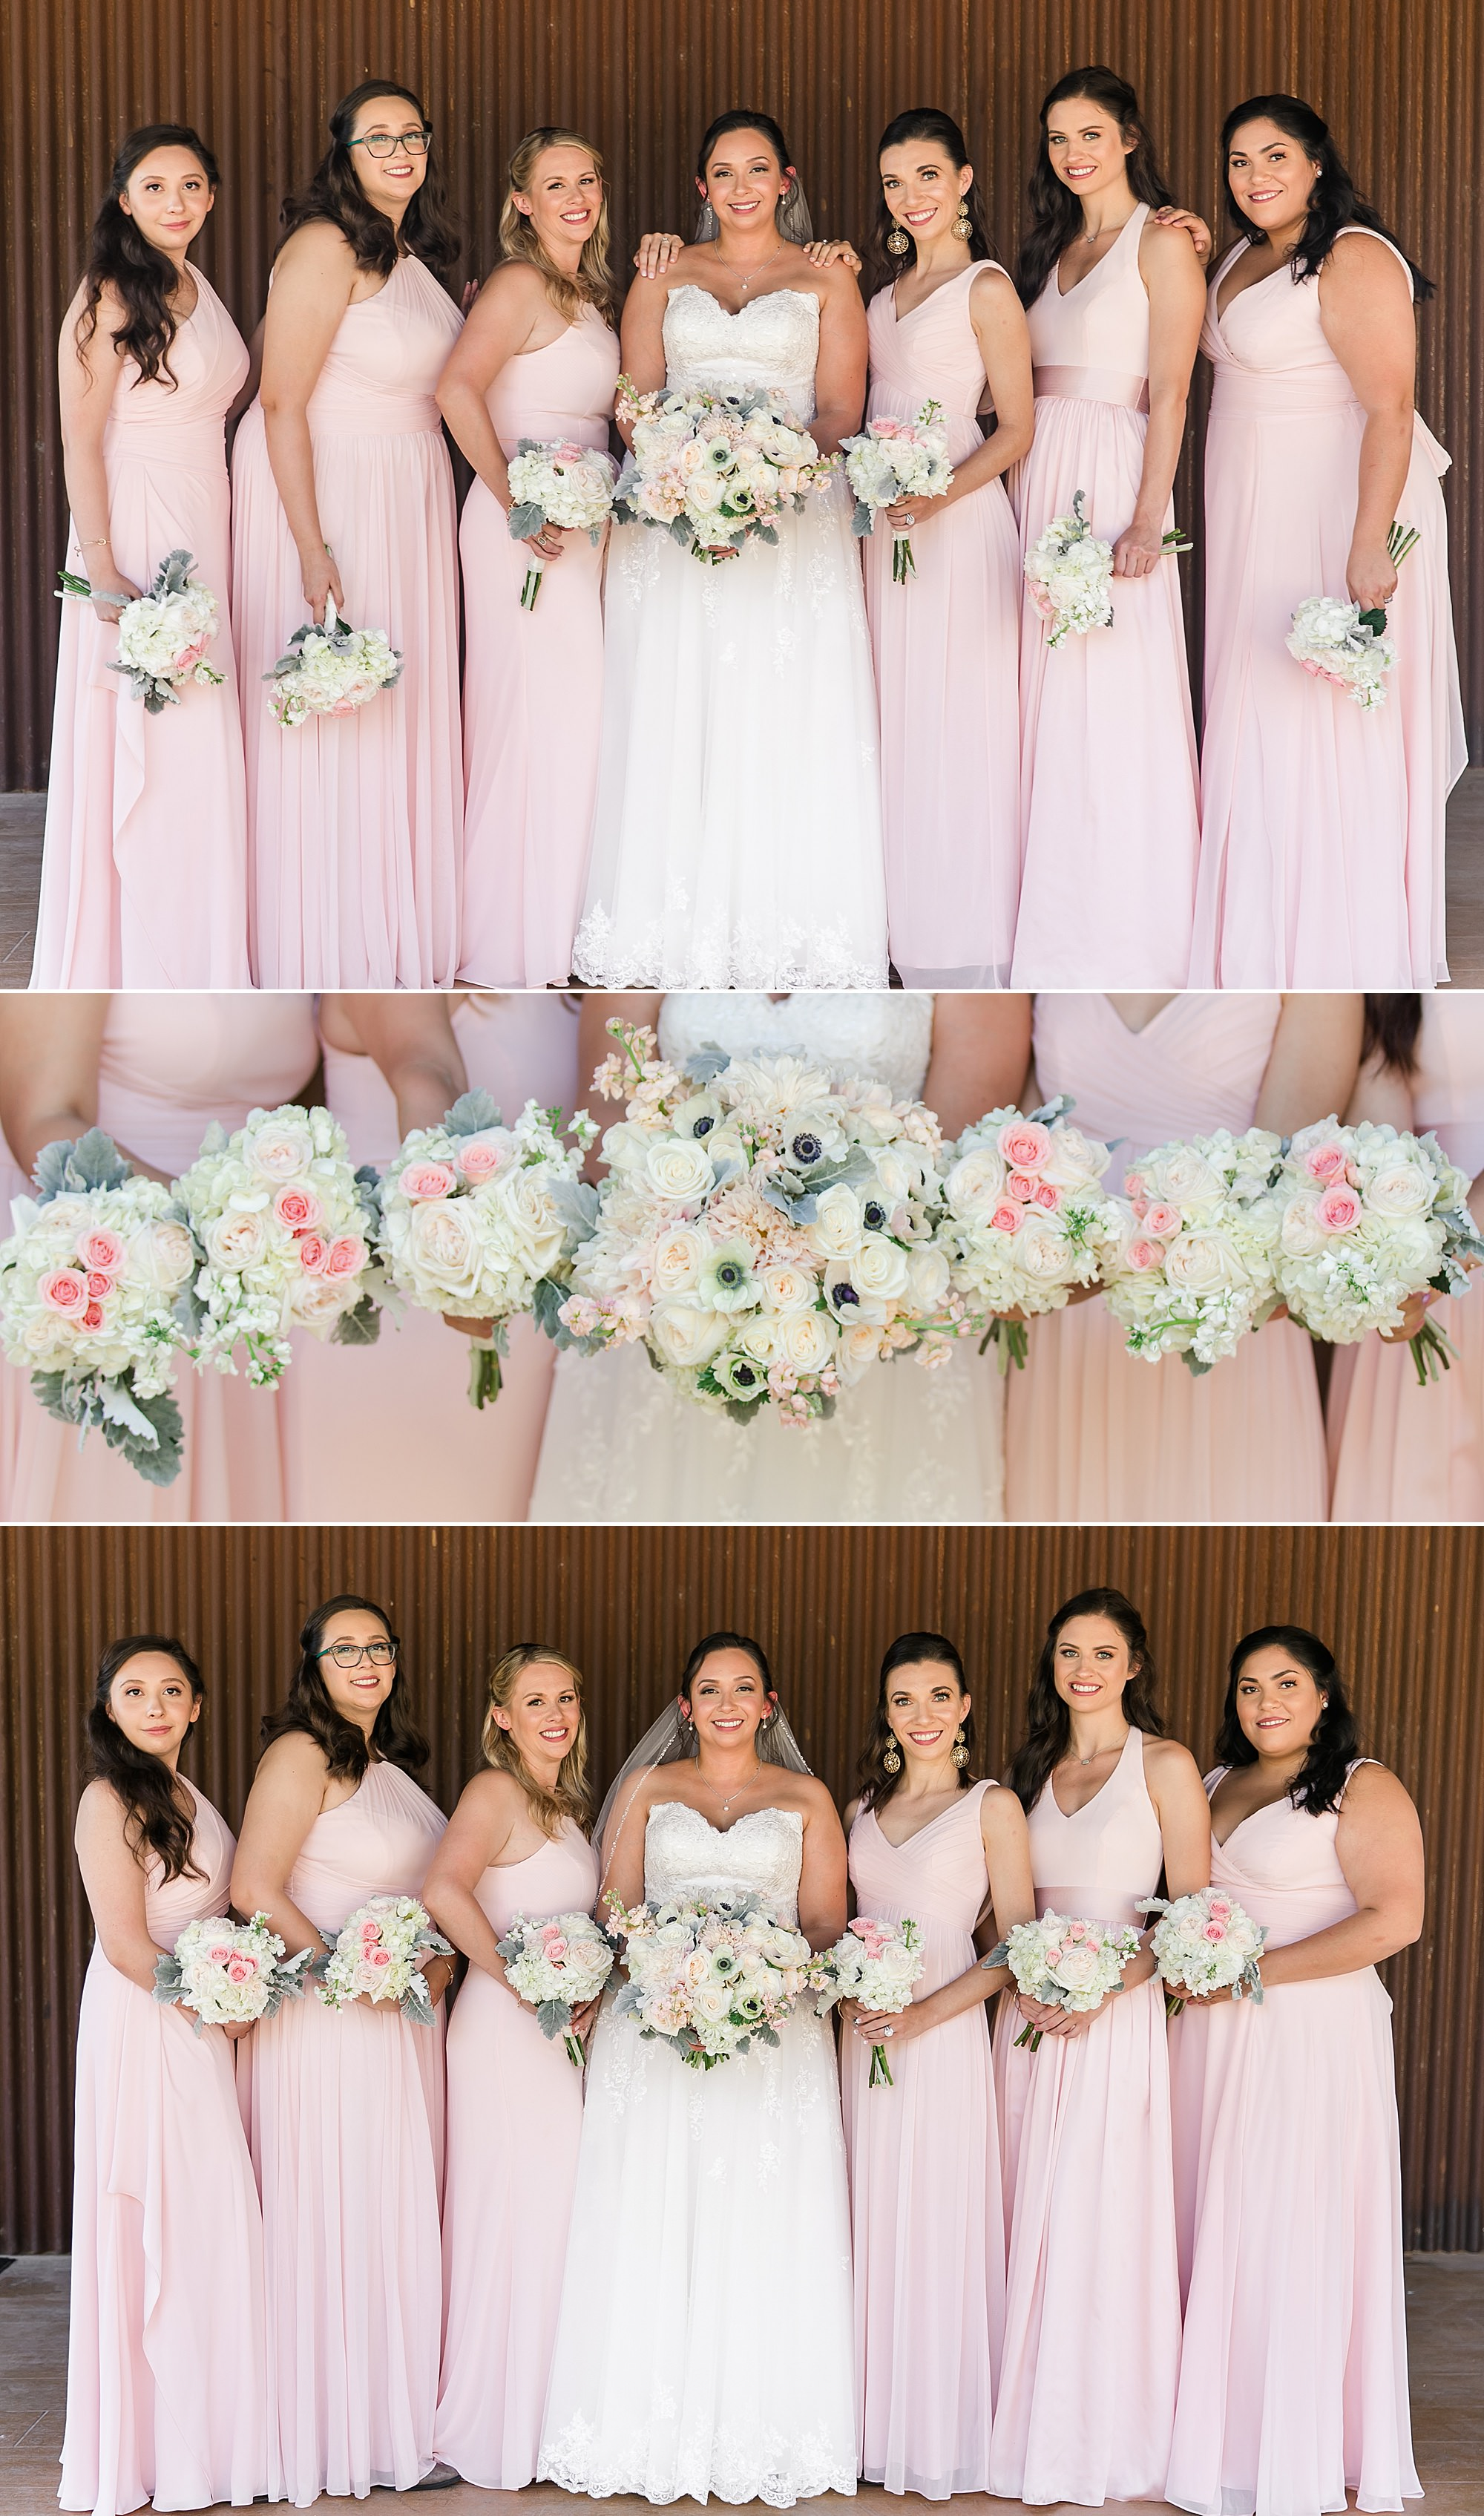 Wedding-Photographer-Bulverde-Texas-Western-Sky-Event-Venue-Carly-Barton-Photography_0022.jpg